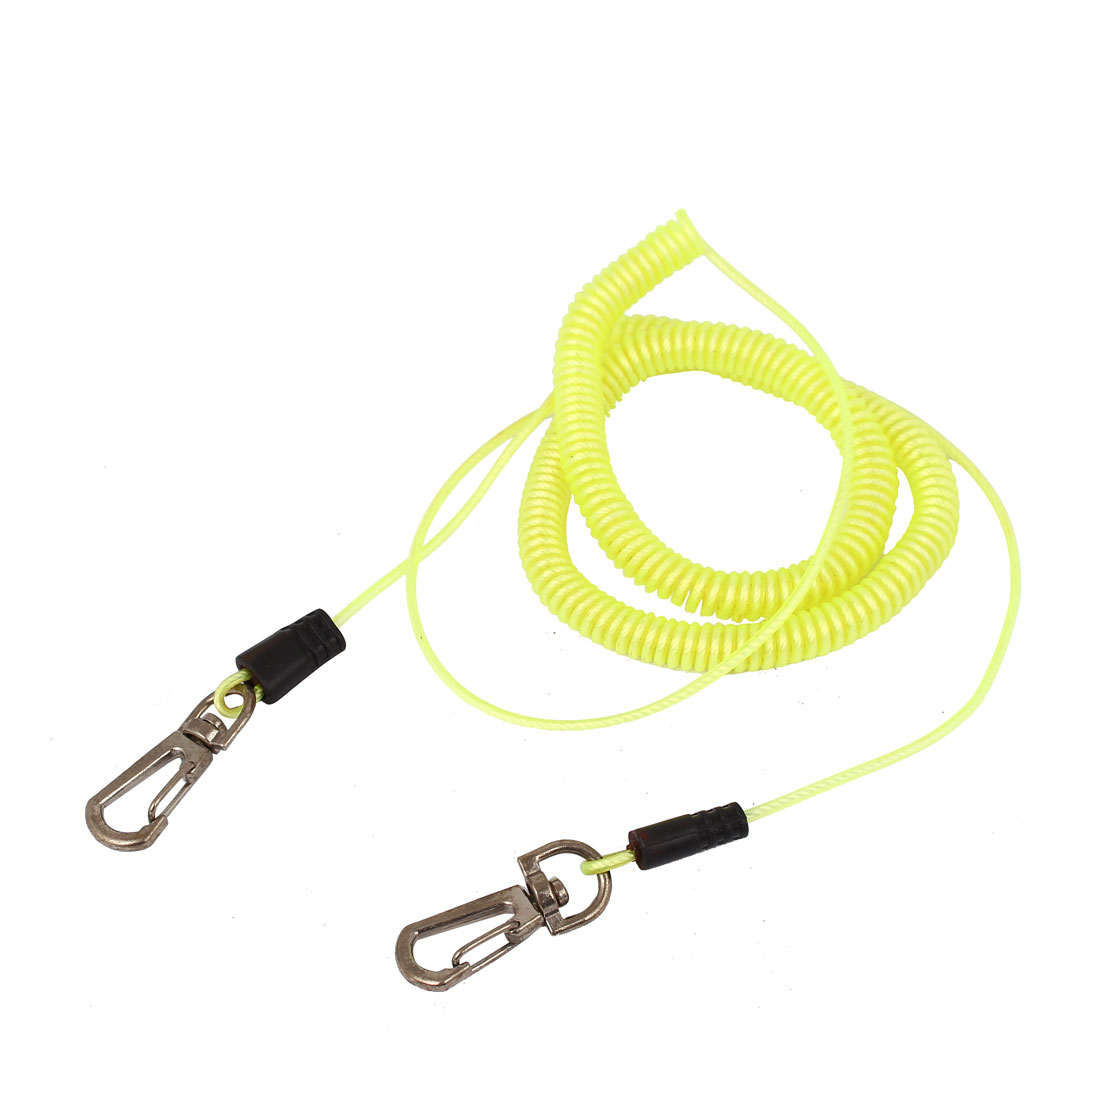 1M Long Dual Lobster Clasp Stretchy Coiled Plastic Fishing Rope Cable Yellow